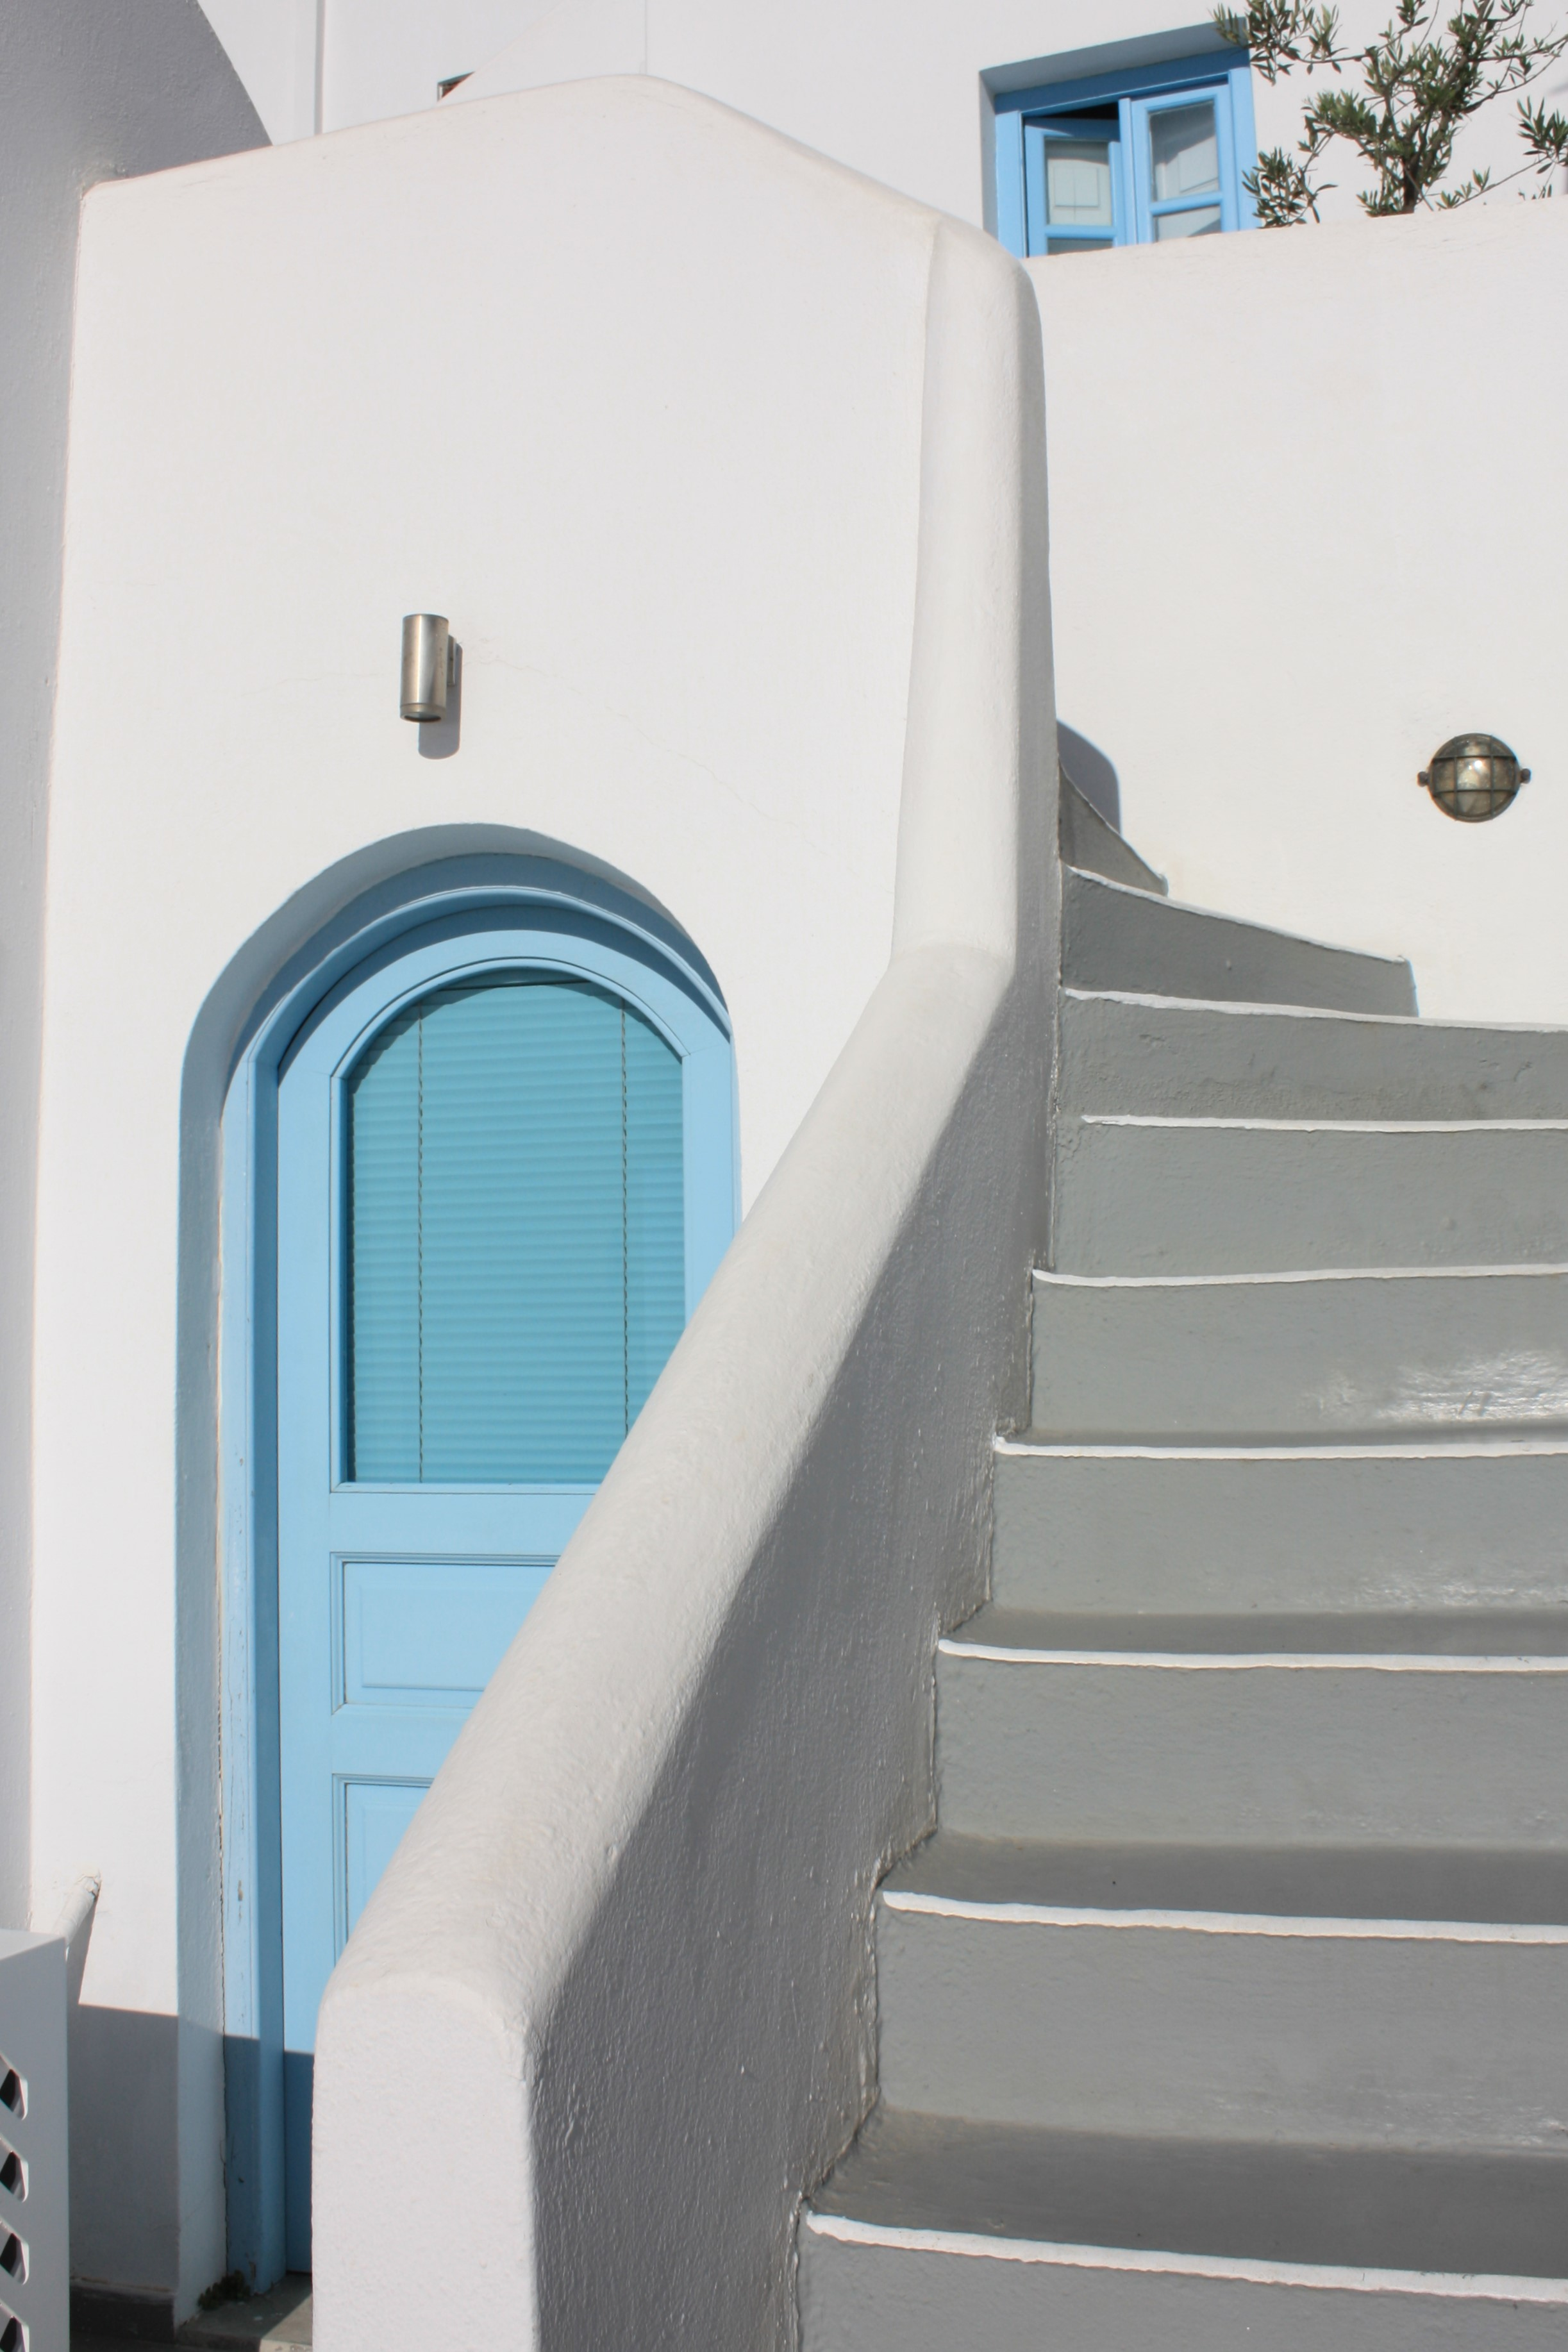 Stairs To ....., Santorini, Greece